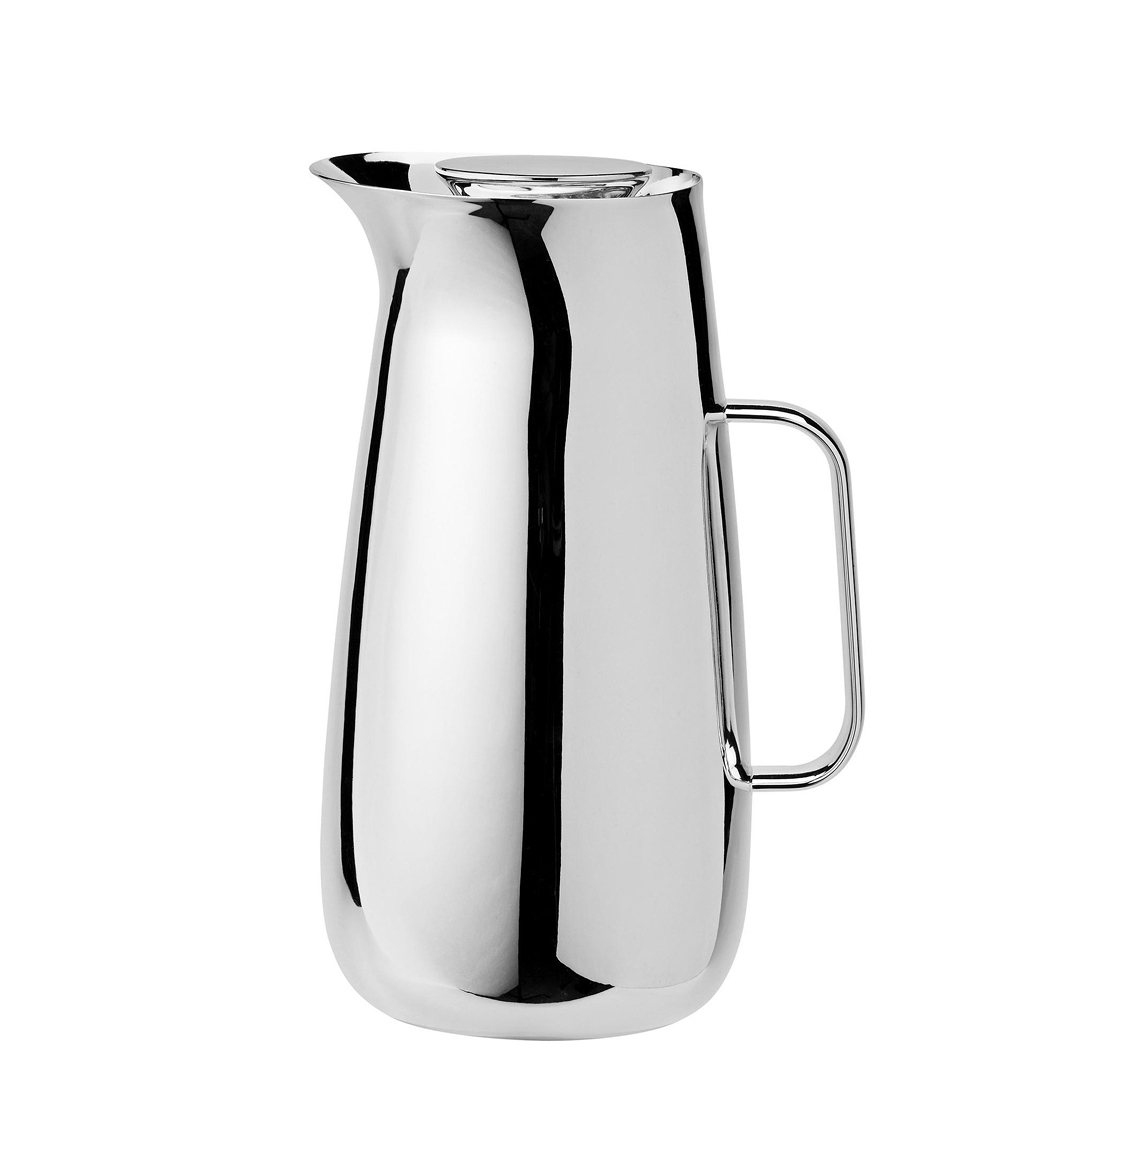 Stelton_Foster_Vacuum_Jug_The_Project_Garments_A